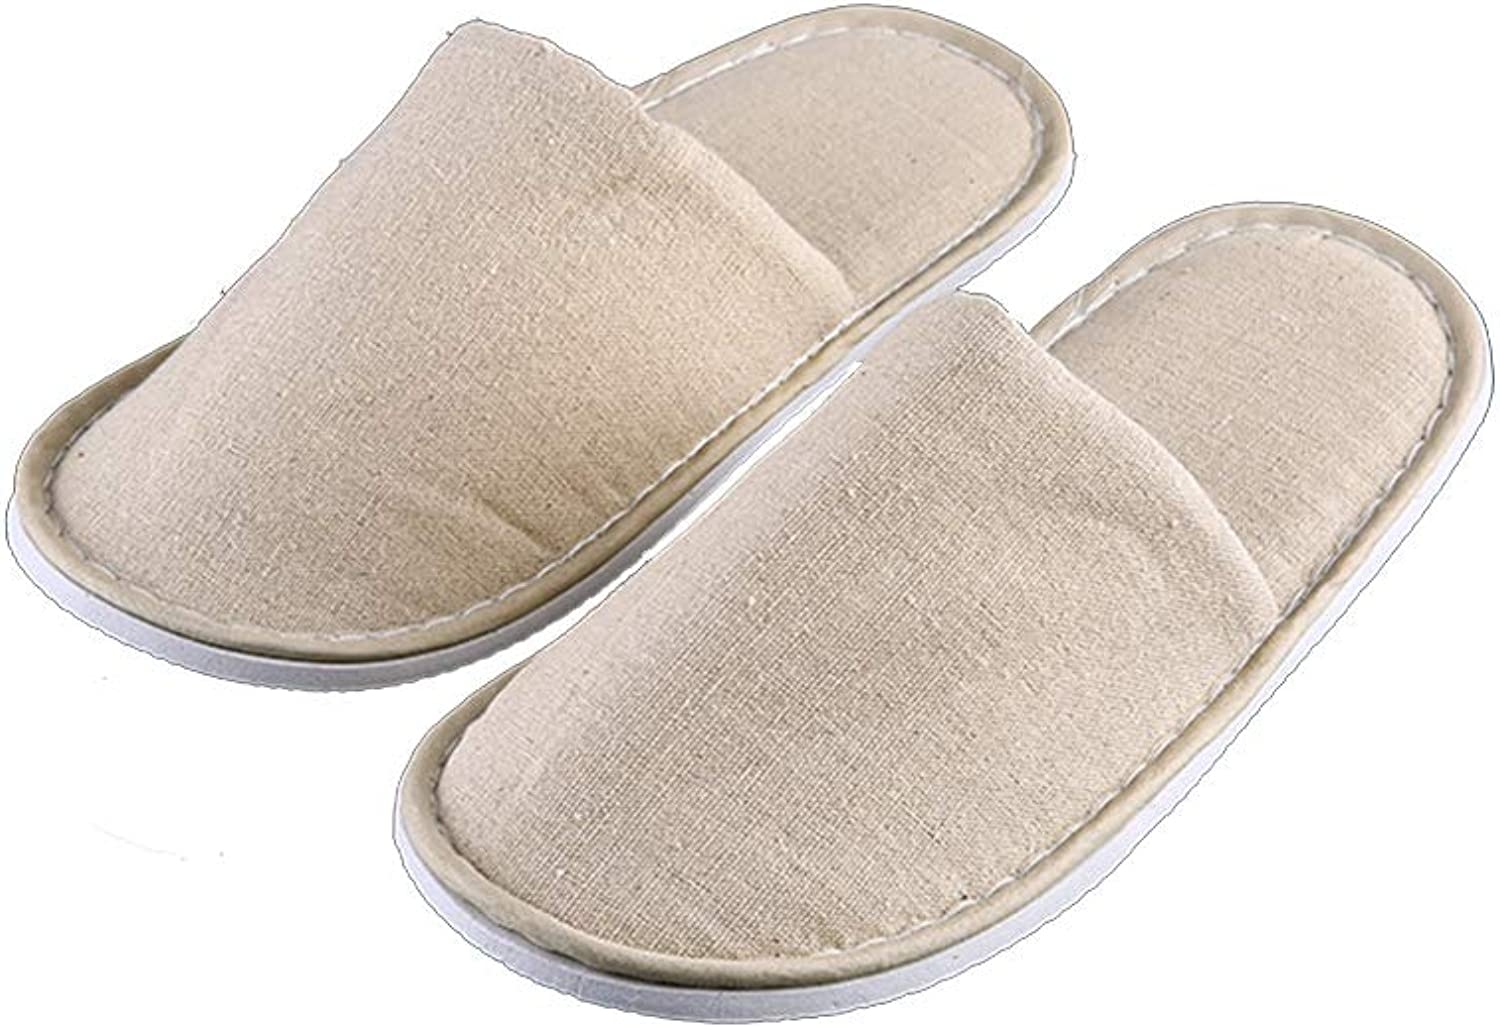 YNN 10 Pair Hotel Travel Spa Disposable Slippers Home Guest Closed Toe Terry Cloth Slippers